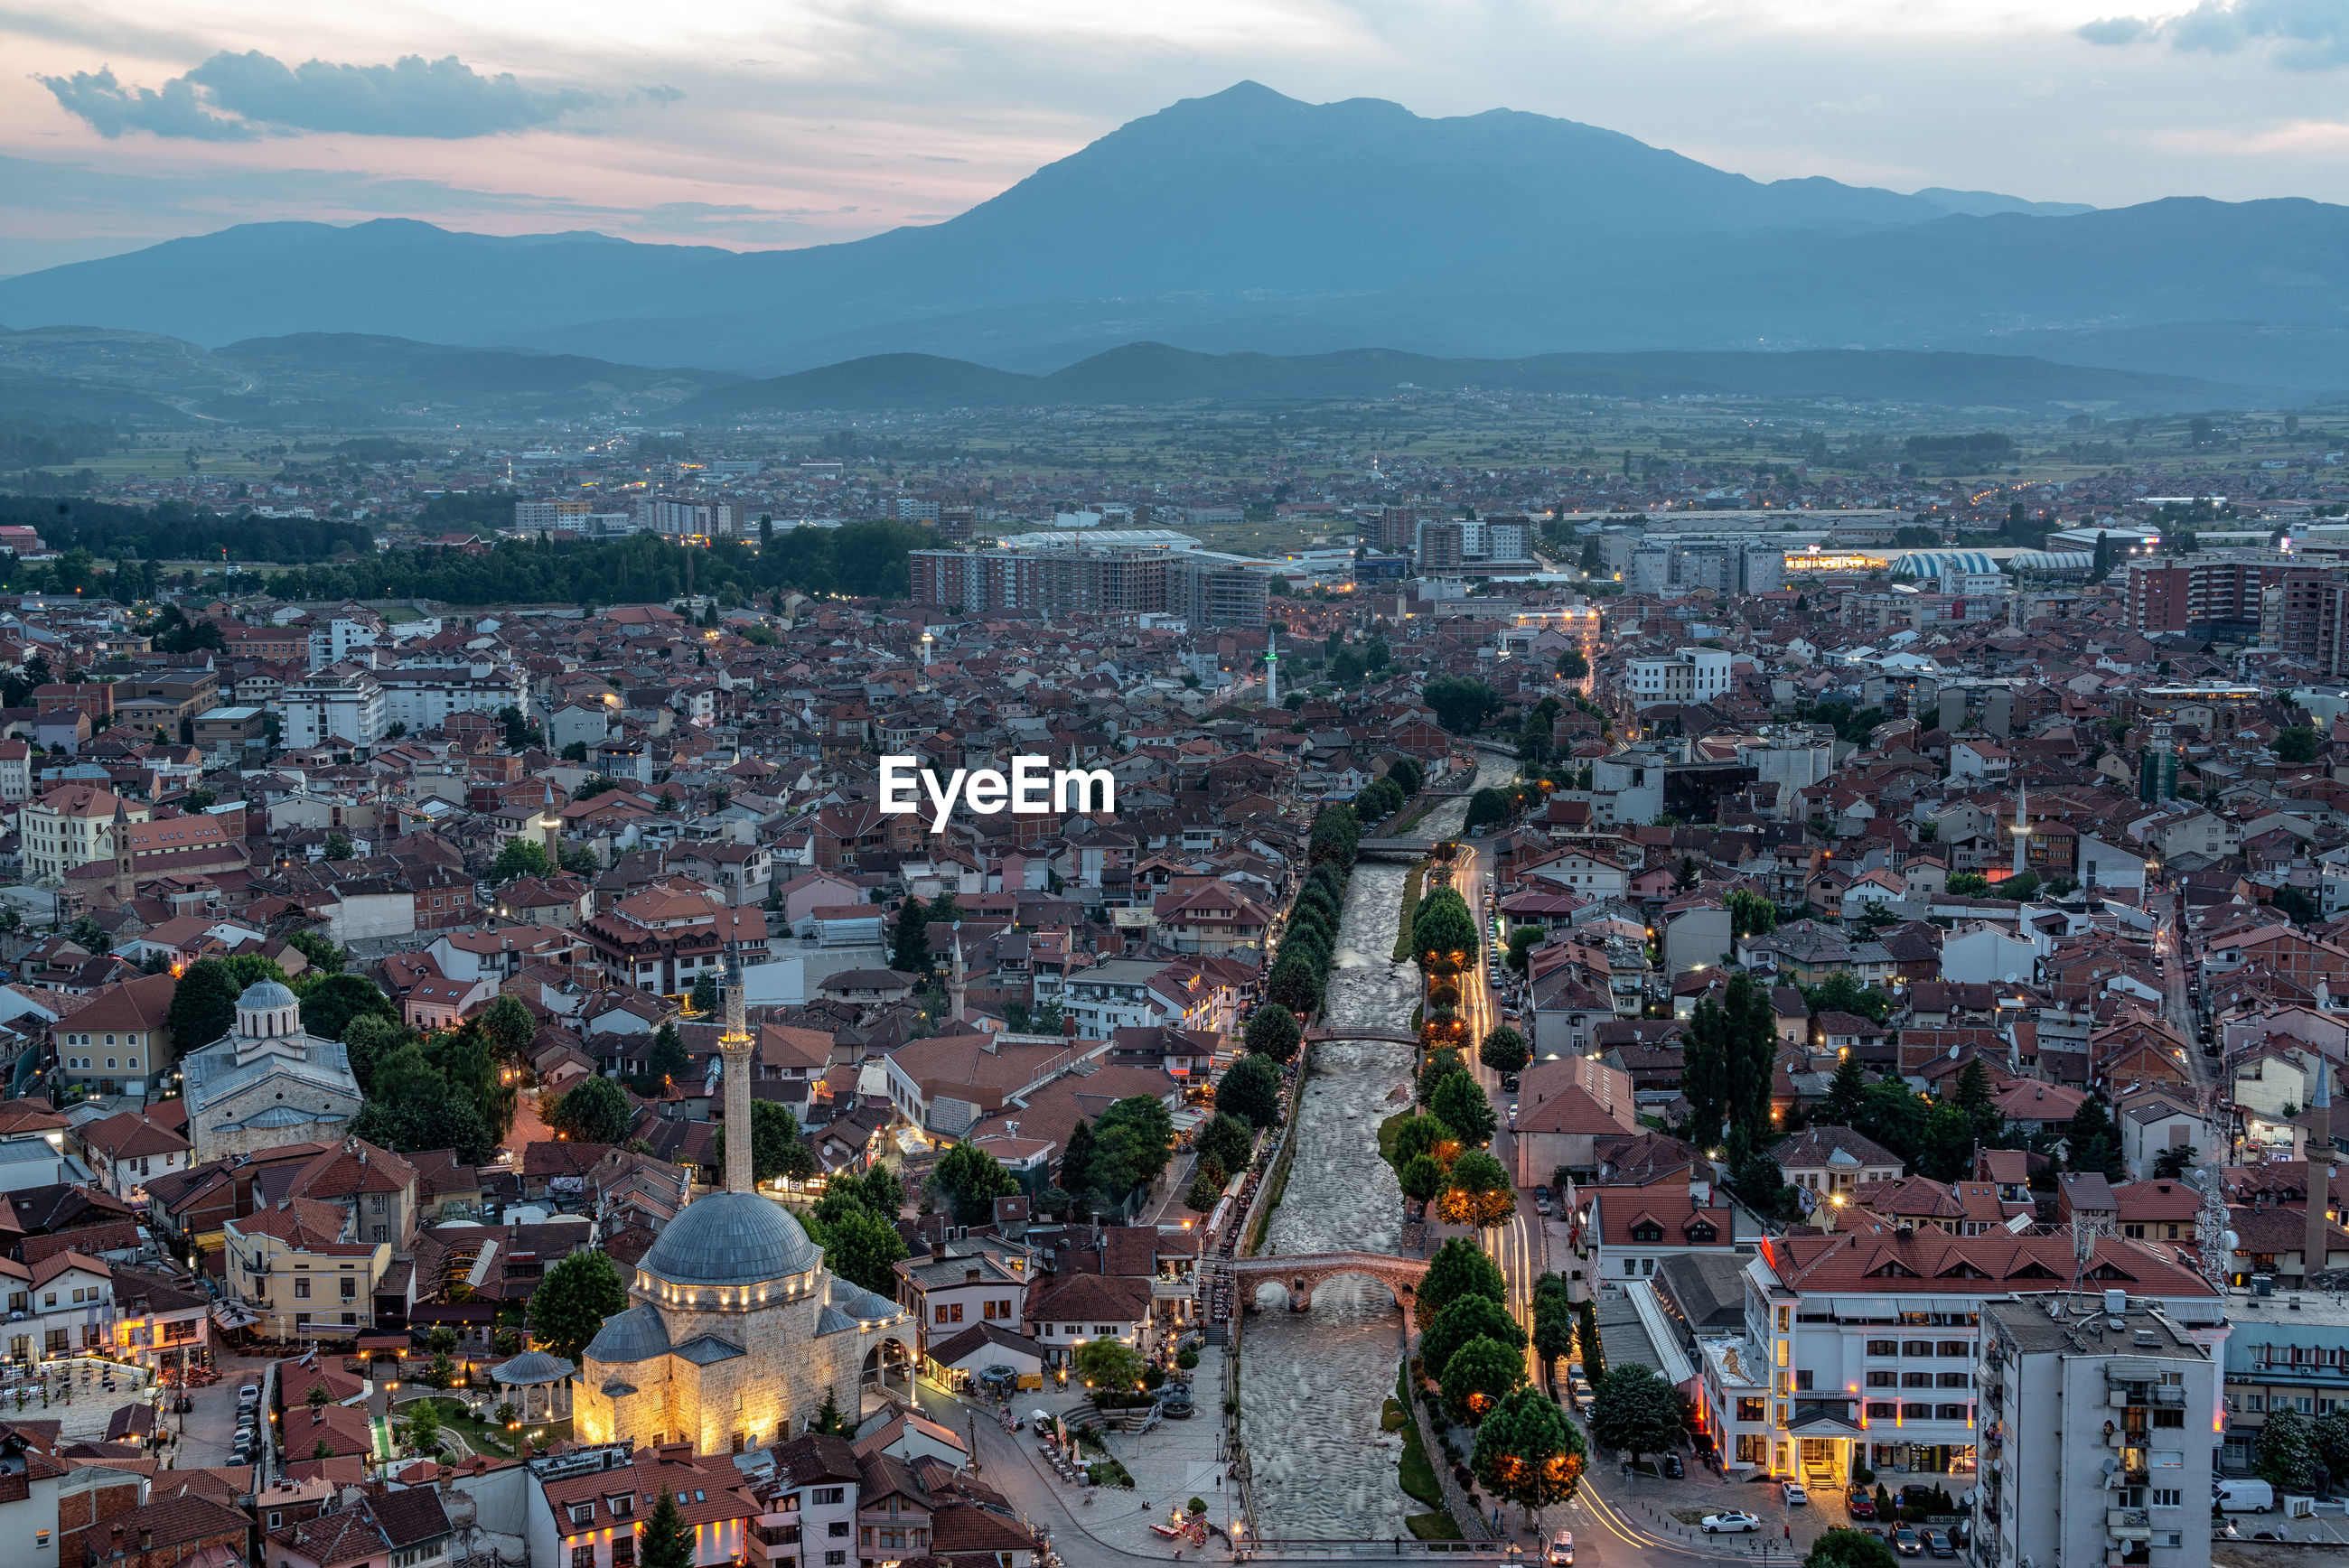 Aerial view of cityscape by mountain at dusk